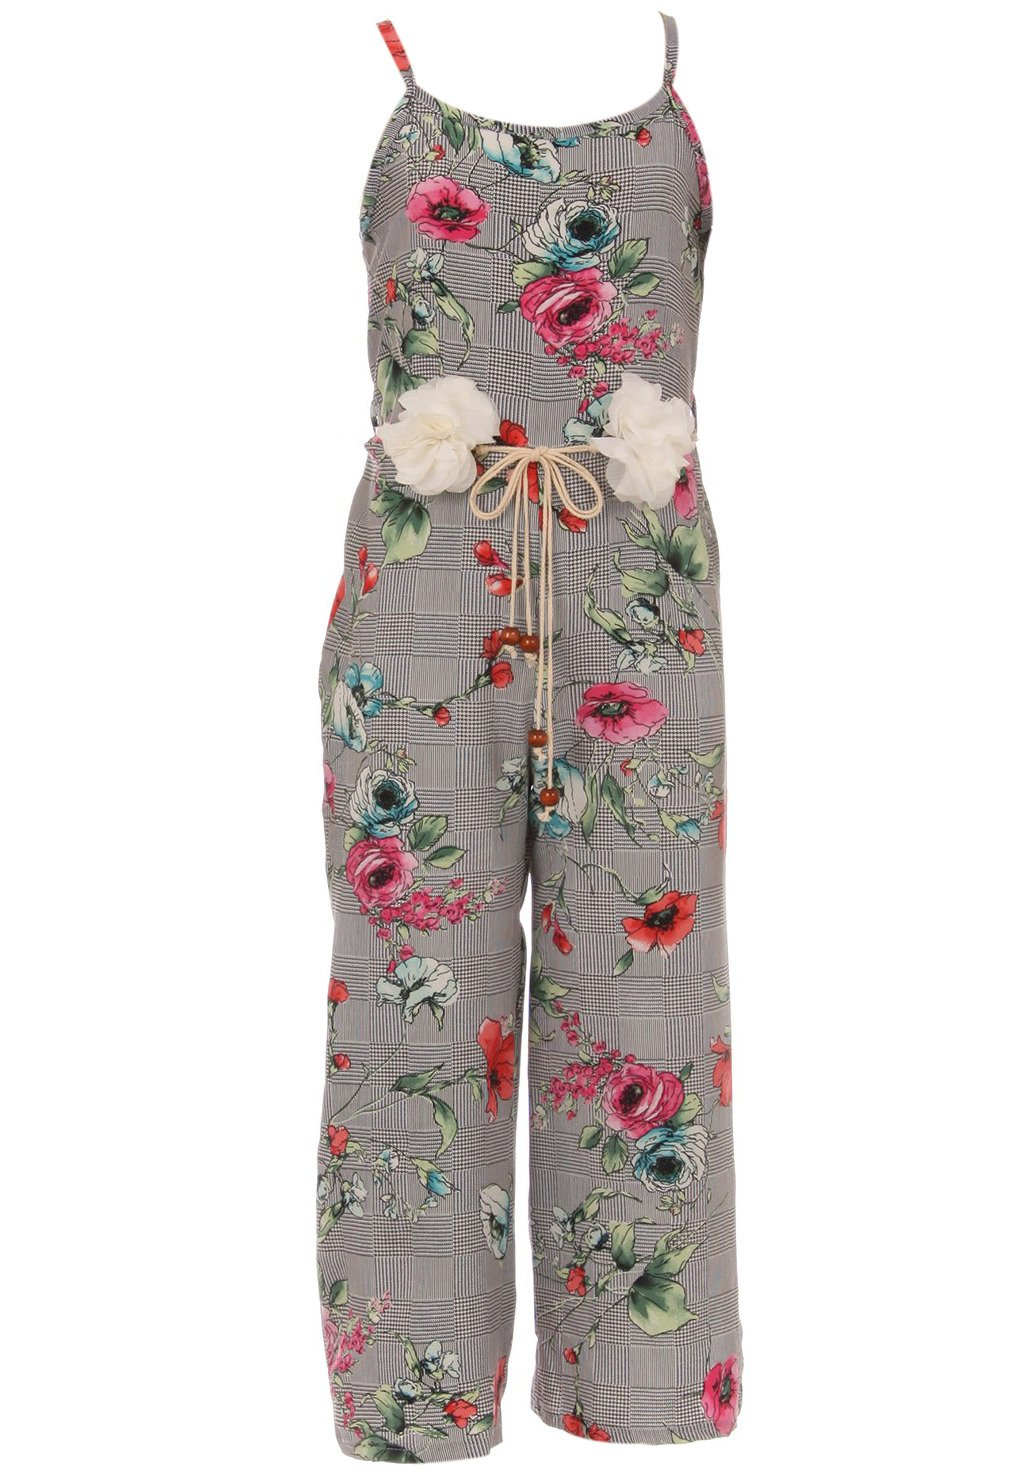 BNY Corner Little Girl Girls Jumpsuits Floral Graduation Casual Summer Birthday Outfit Coral 6 JKS 2127